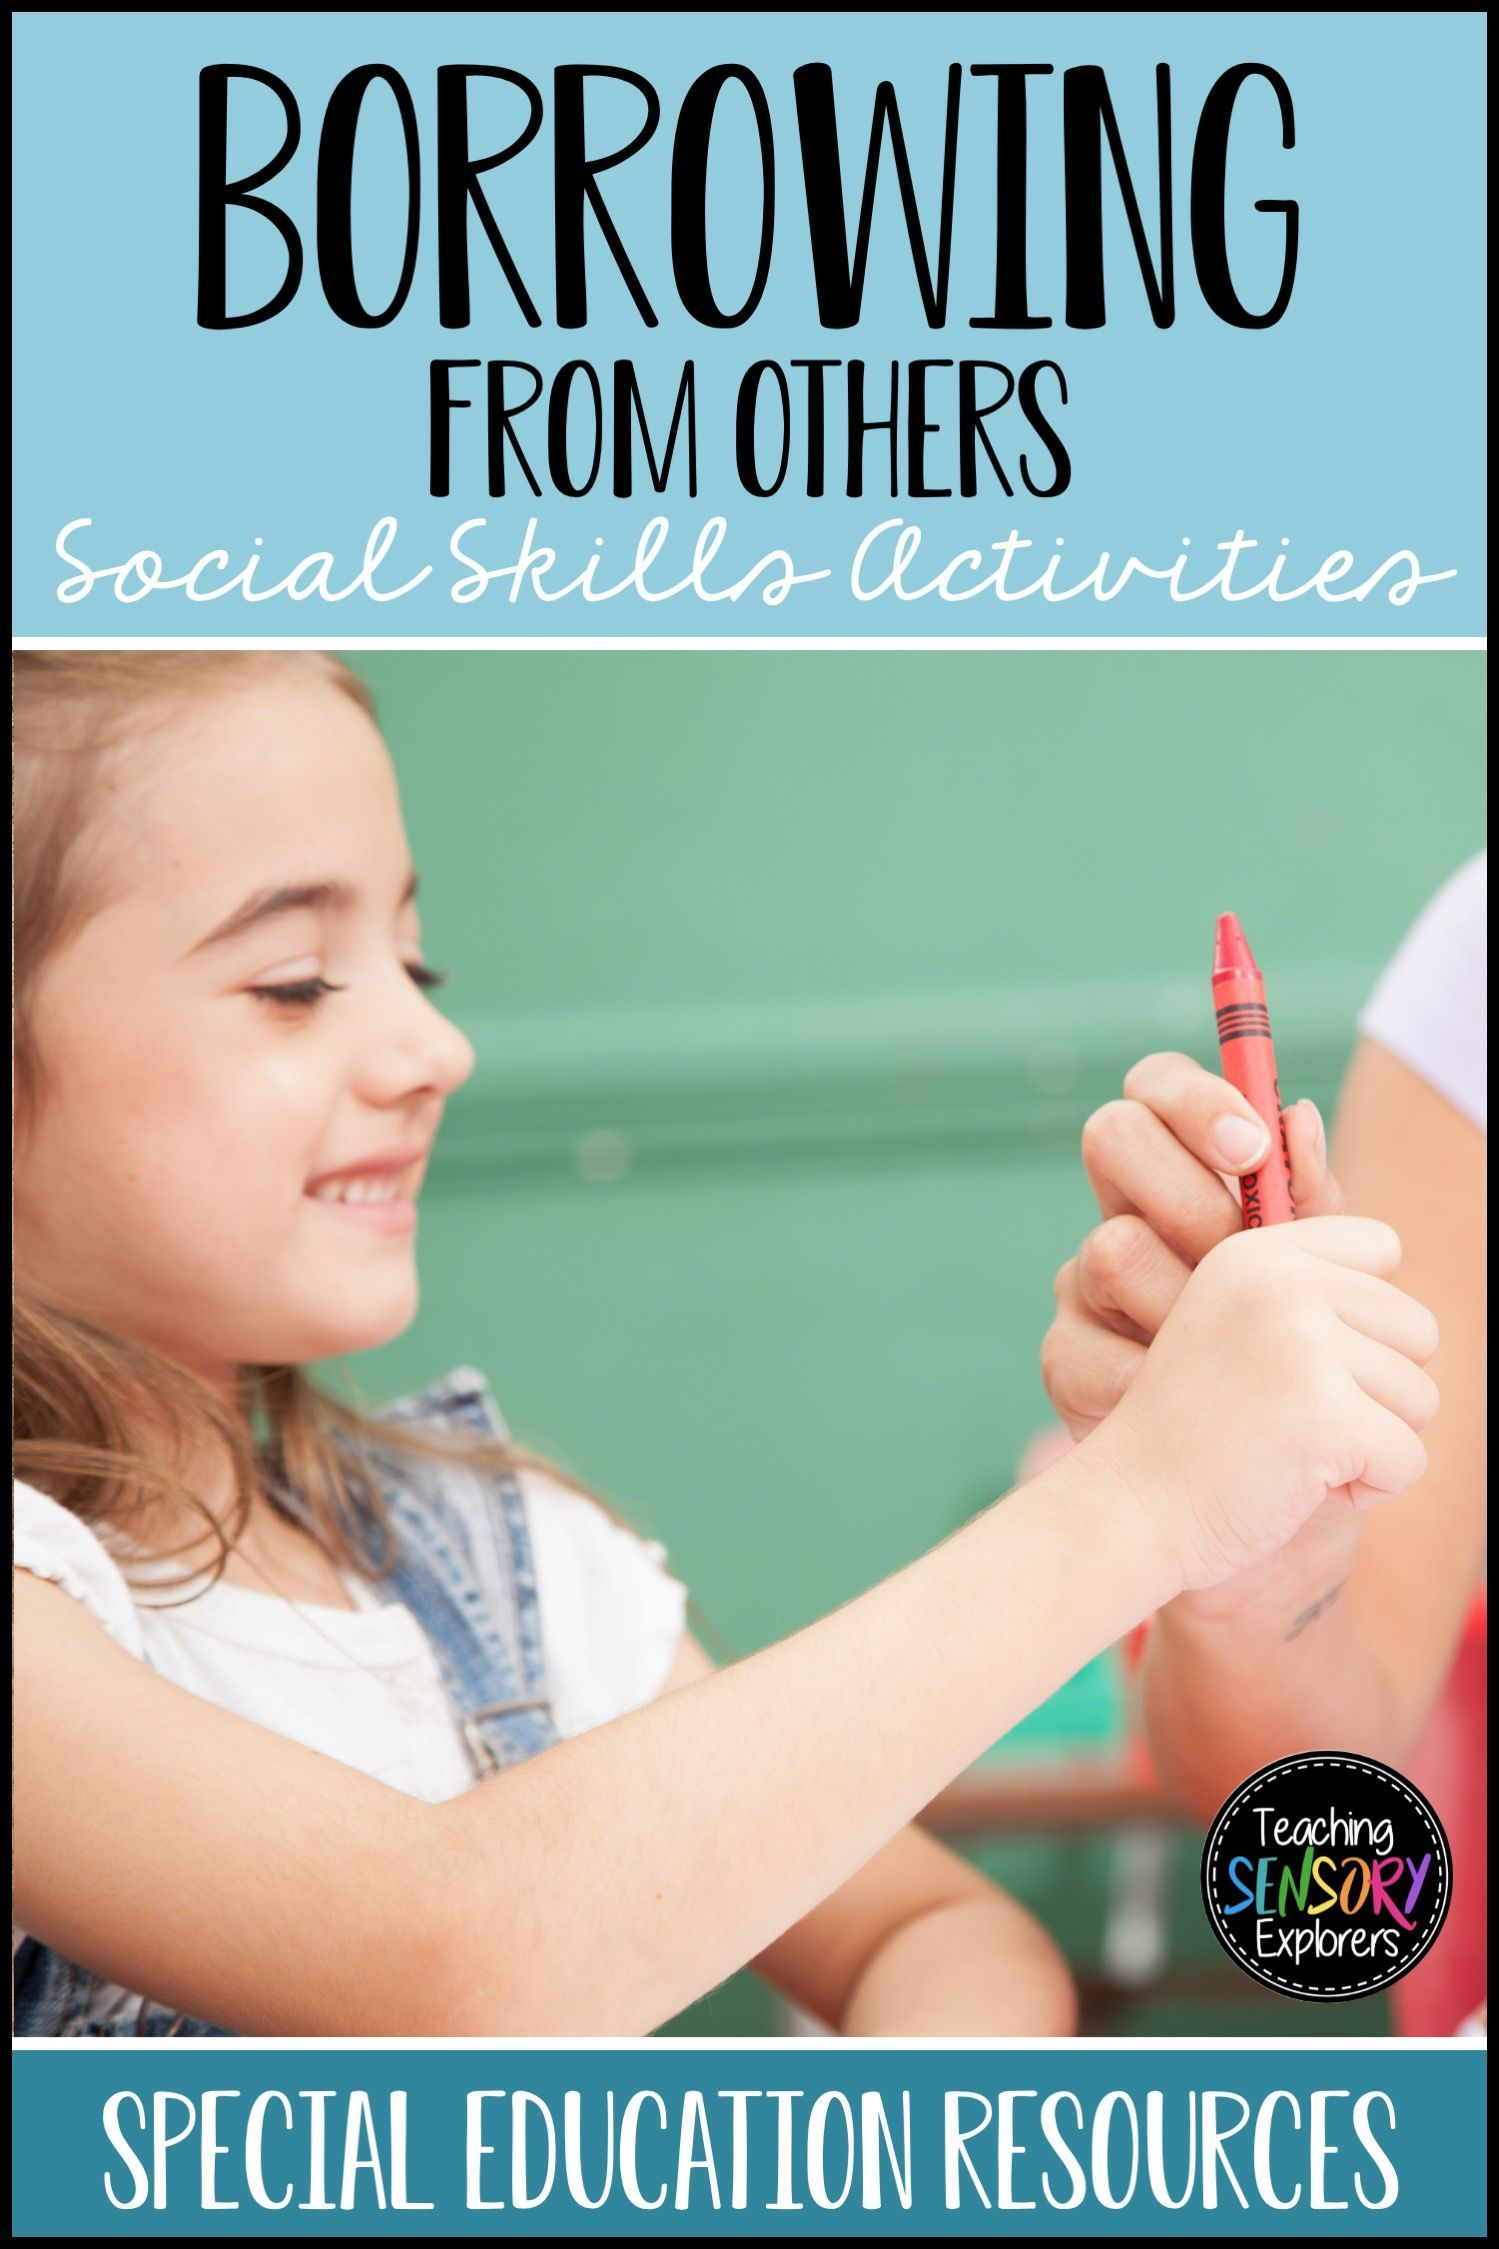 Borrowing From Others Social Skills Worksheets Activity